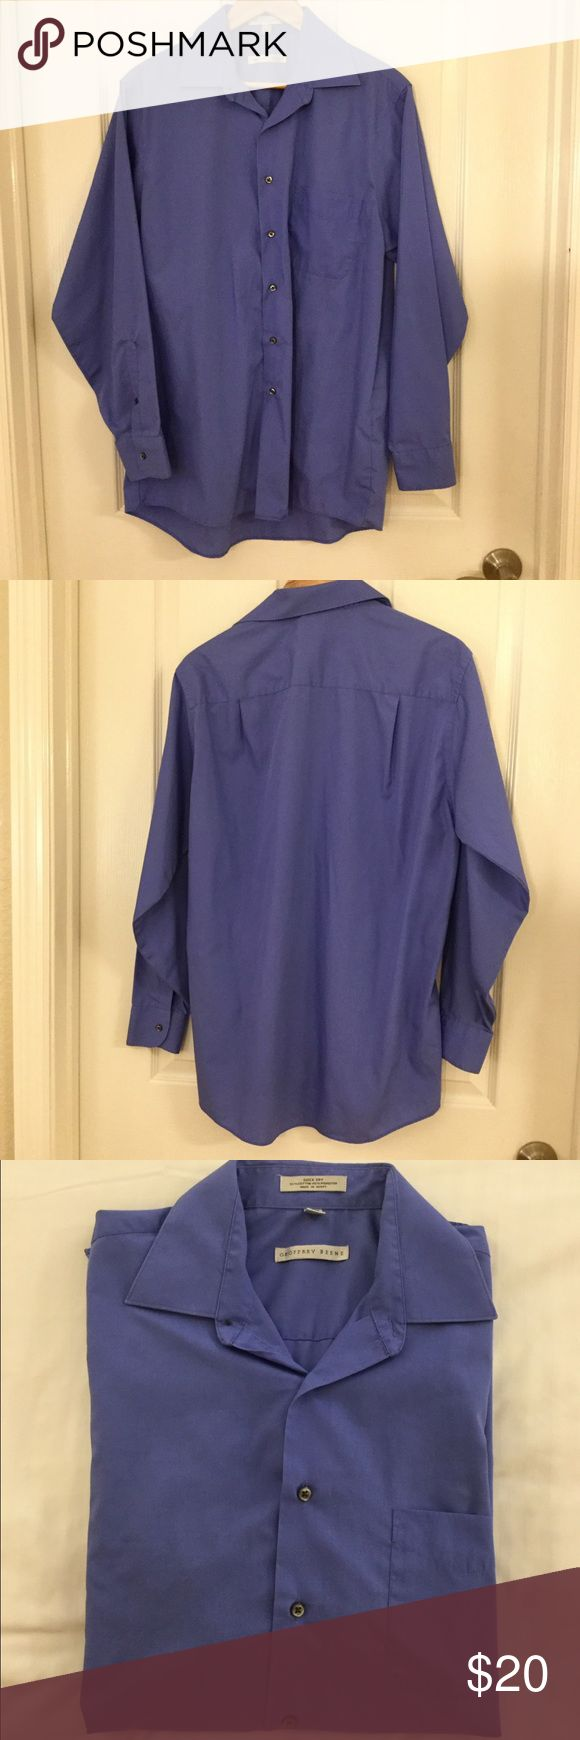 🌴NEW LISTING🌴 Geoffrey Beene Wrinkle Free Shirt Blue.  Quick dry. Wrinkle free. 55% cotton 45% polyester. Size 16 (34/35) Large.  (11/16) Geoffrey Beene Shirts Casual Button Down Shirts